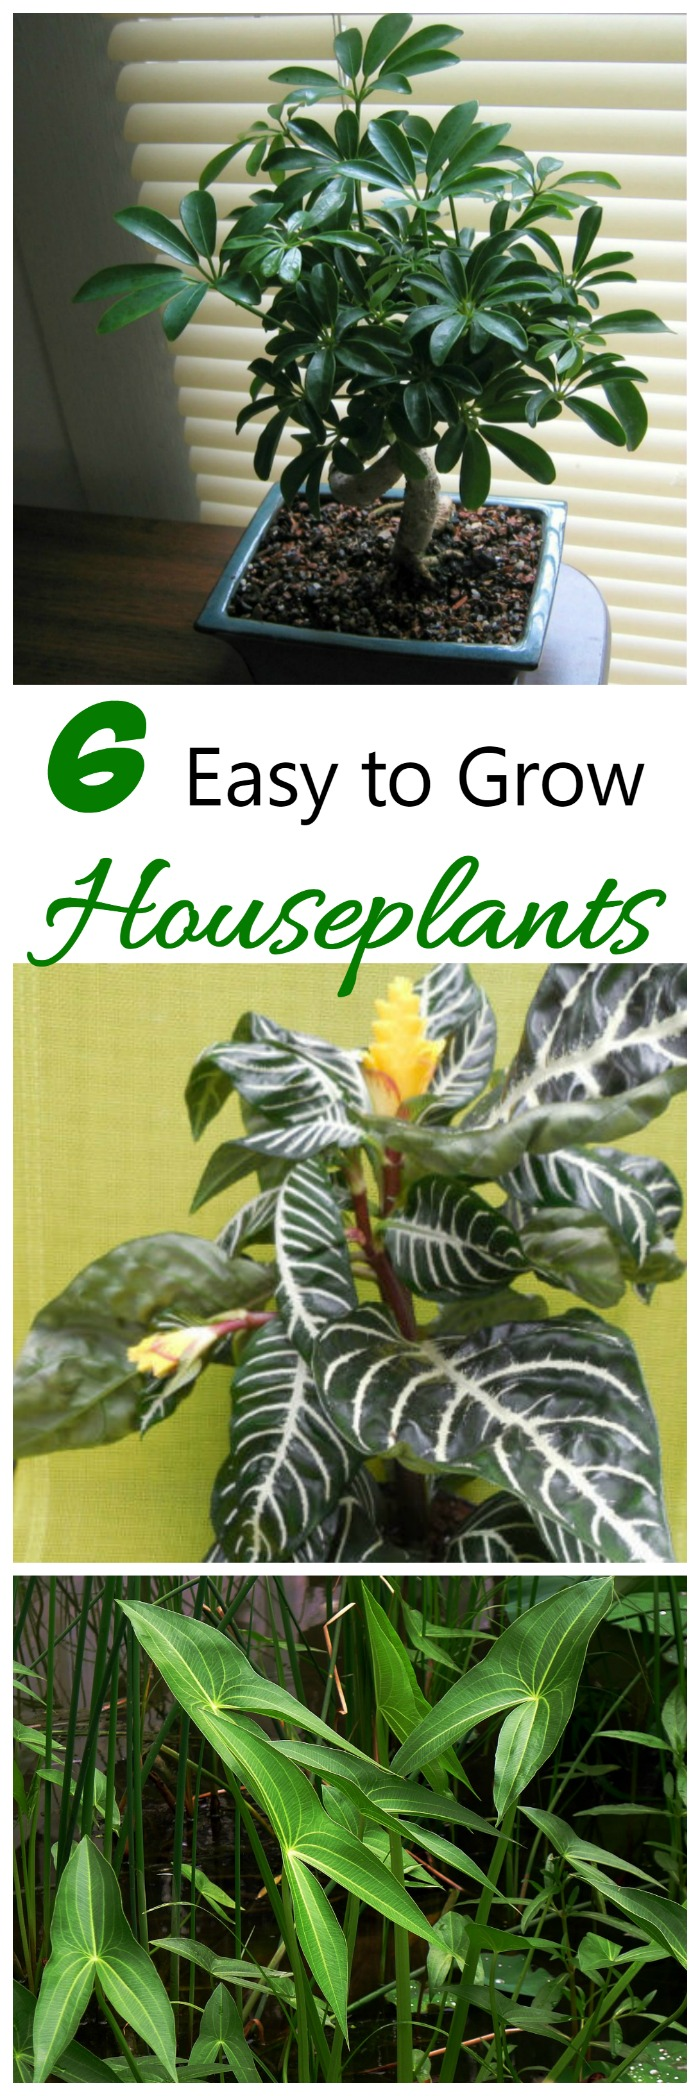 easy houseplants to grow   favorites  the gardening cook, Natural flower